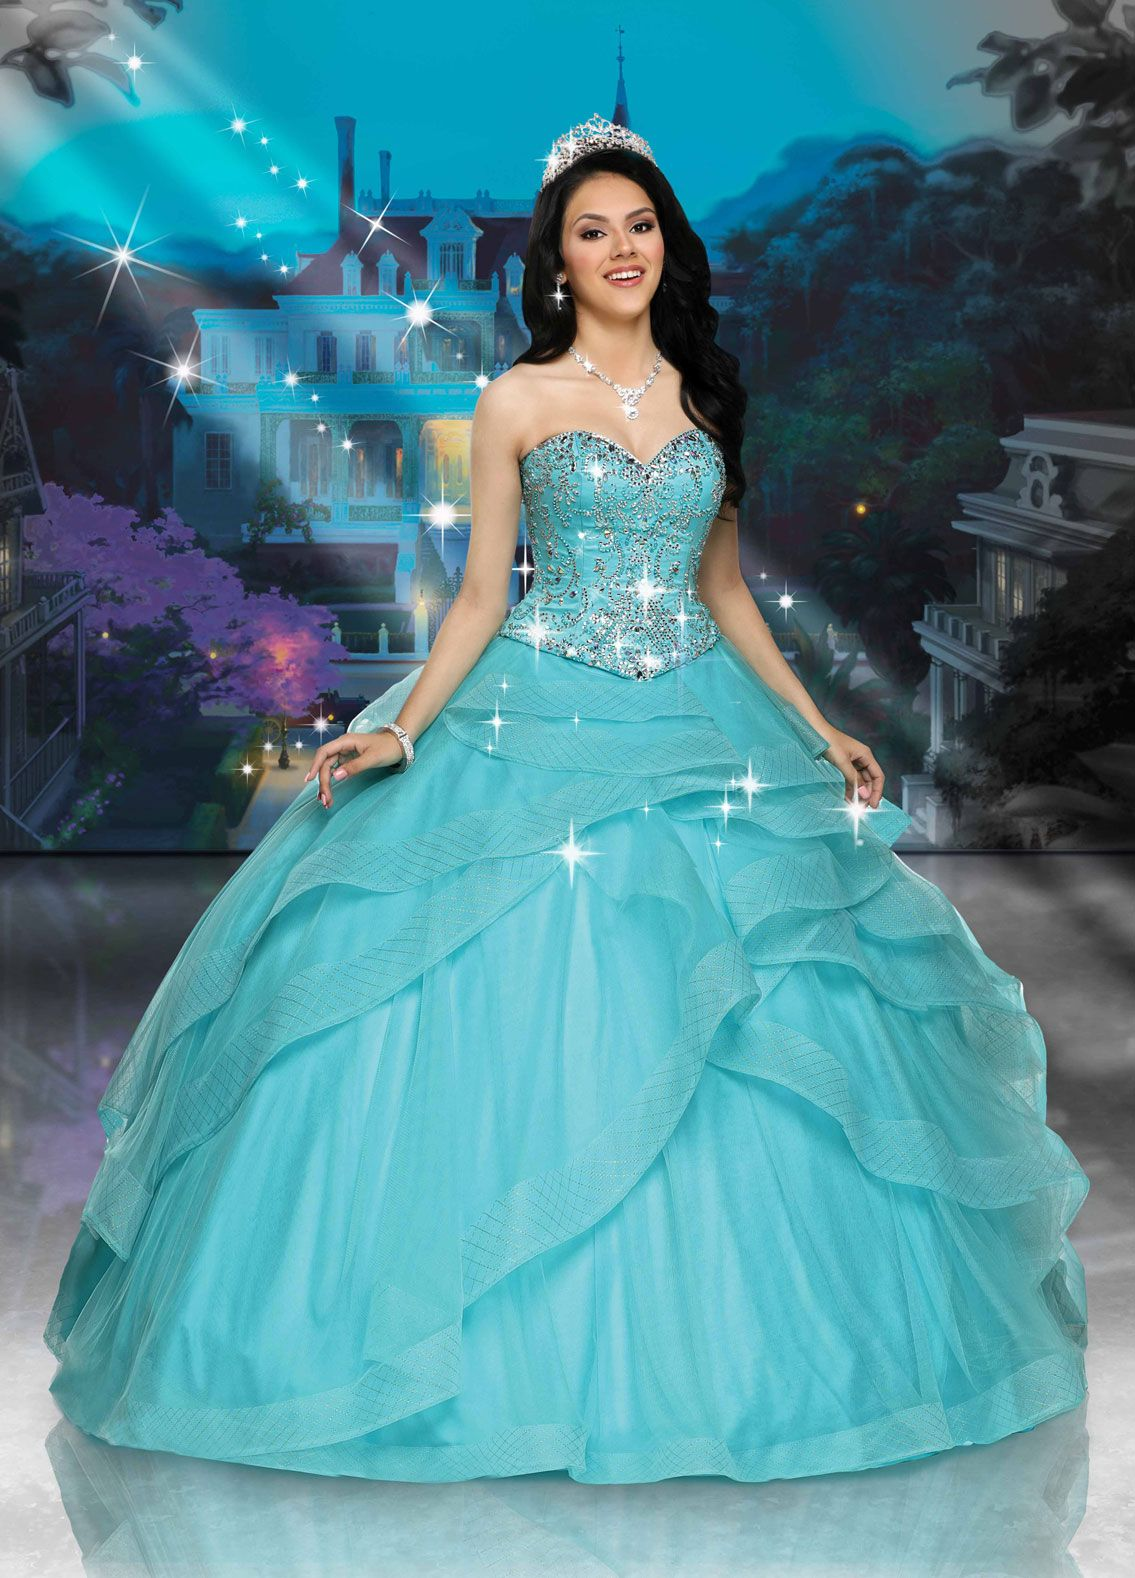 Tiana | Disney Royal Ball | quinceanera | Pinterest | Tiana disney ...